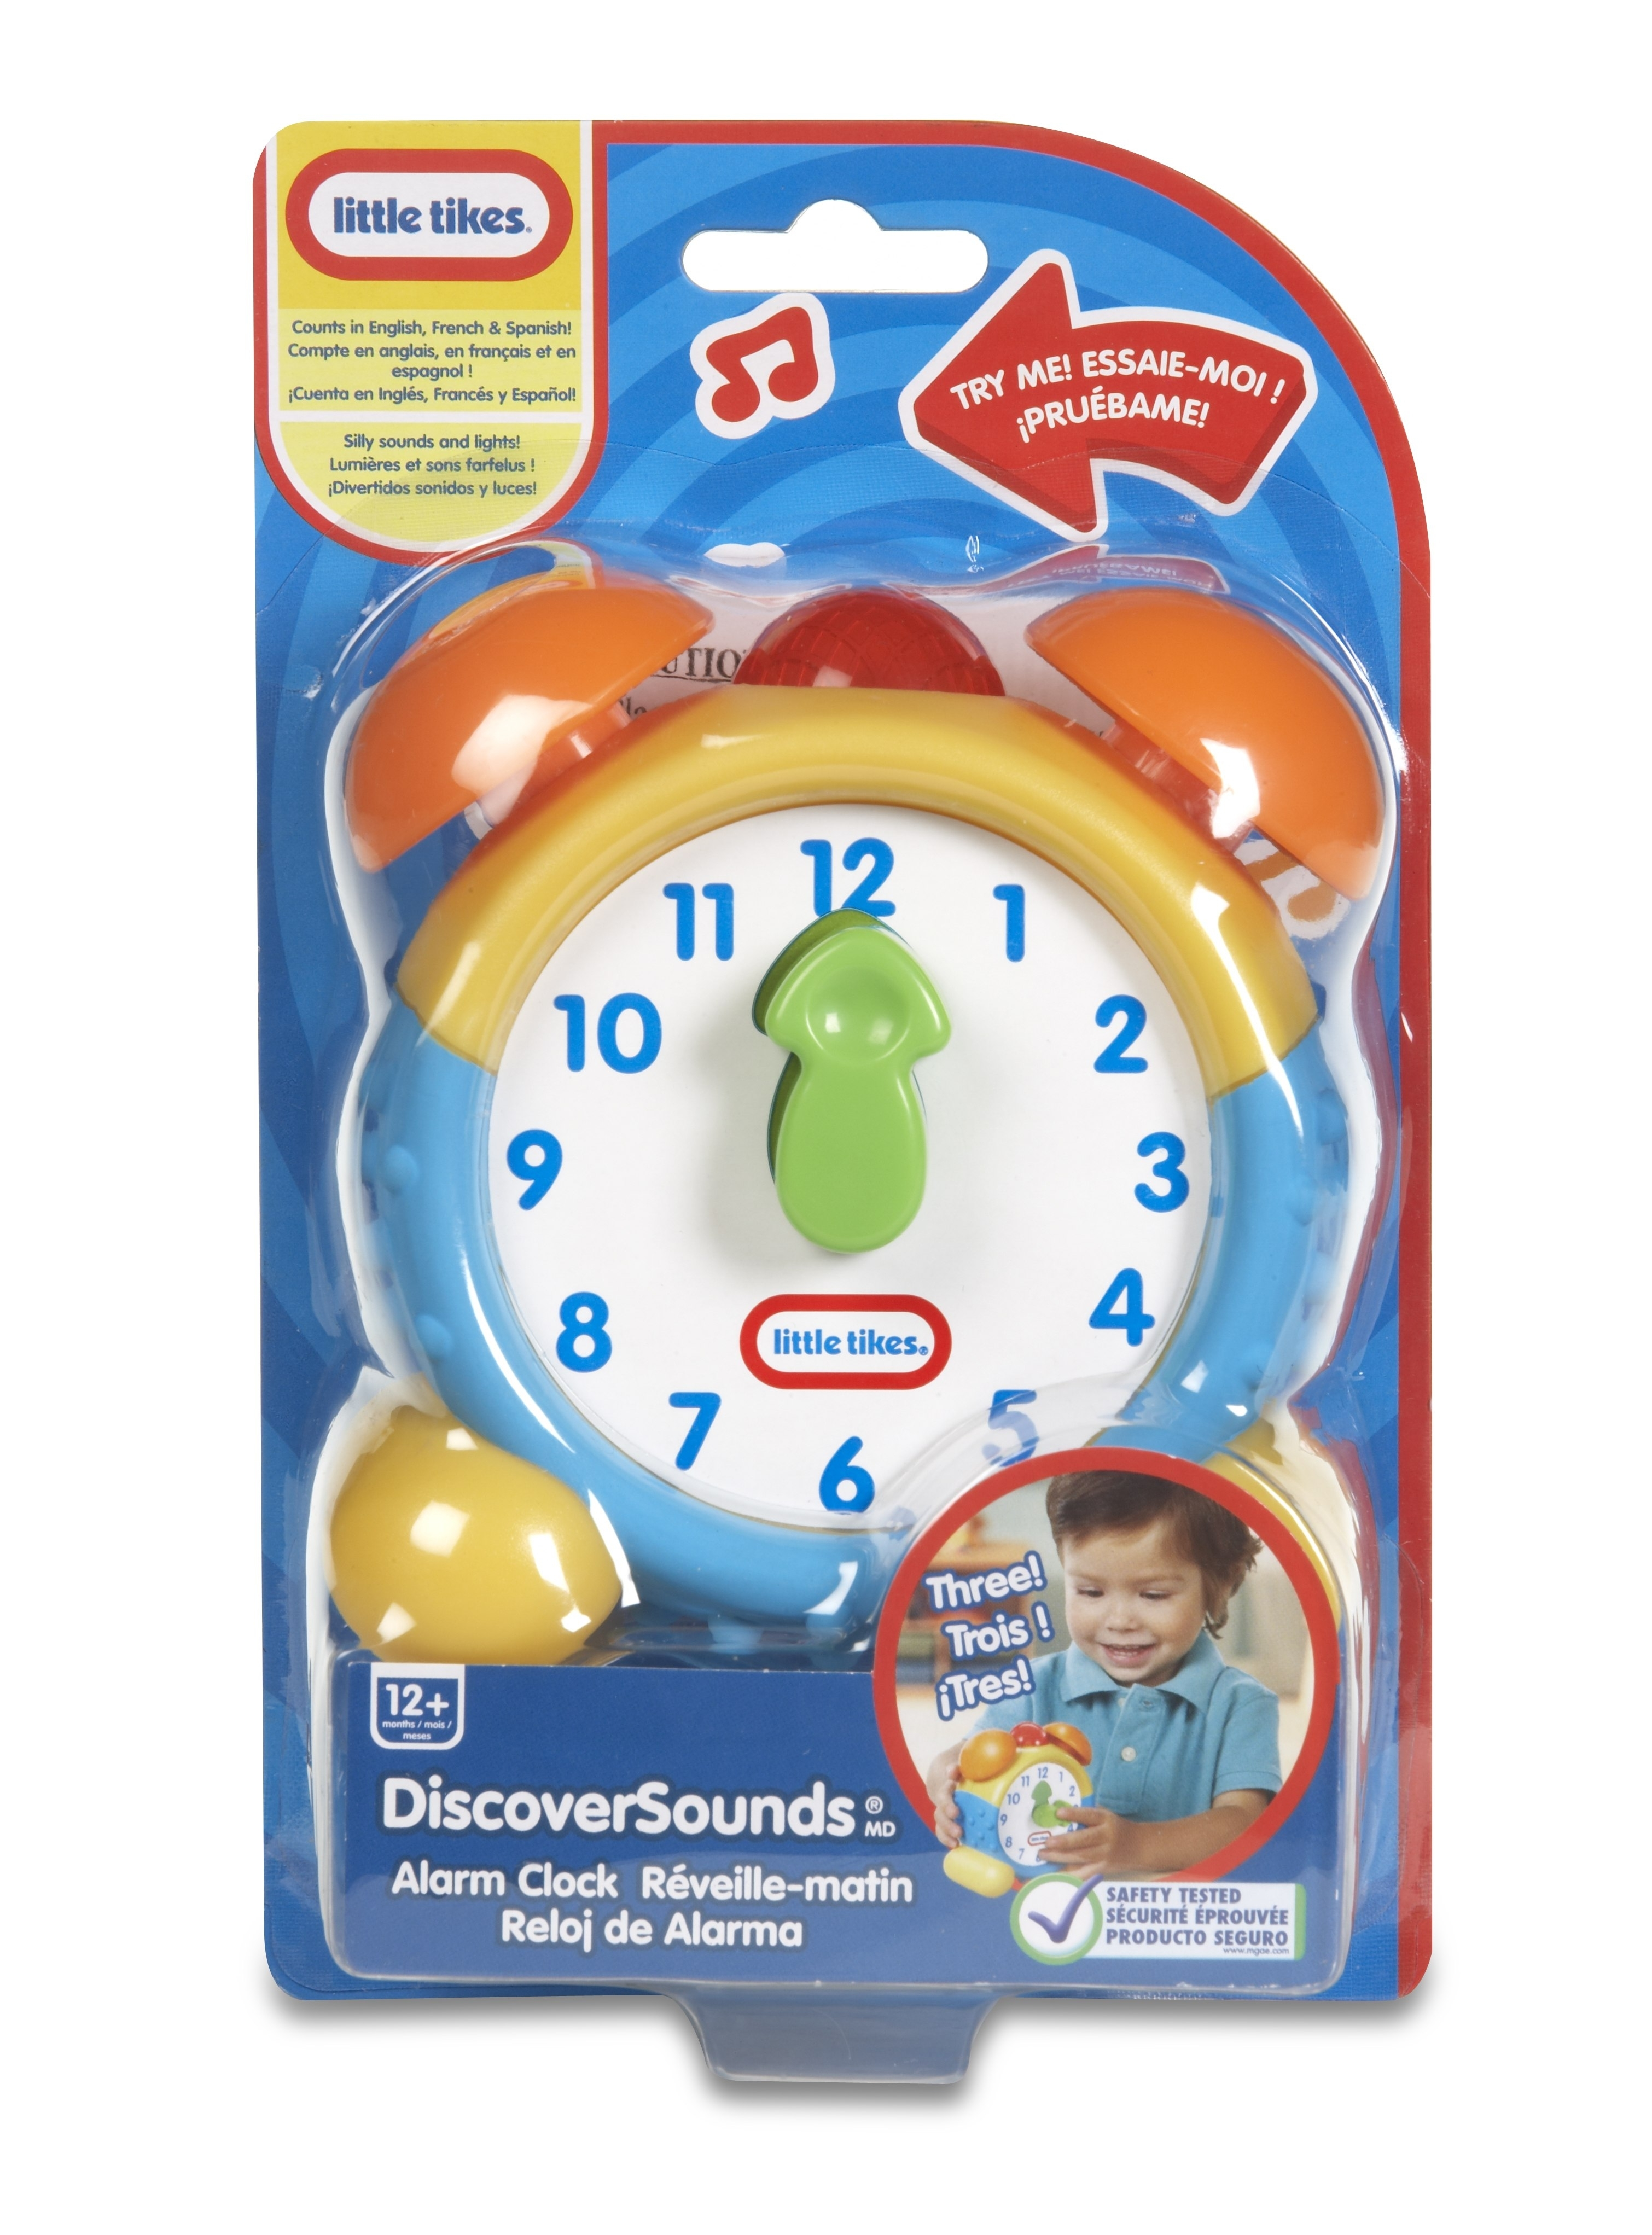 Tike Securite Notice Discover Sounds Alarm Clock My Little Review Corner